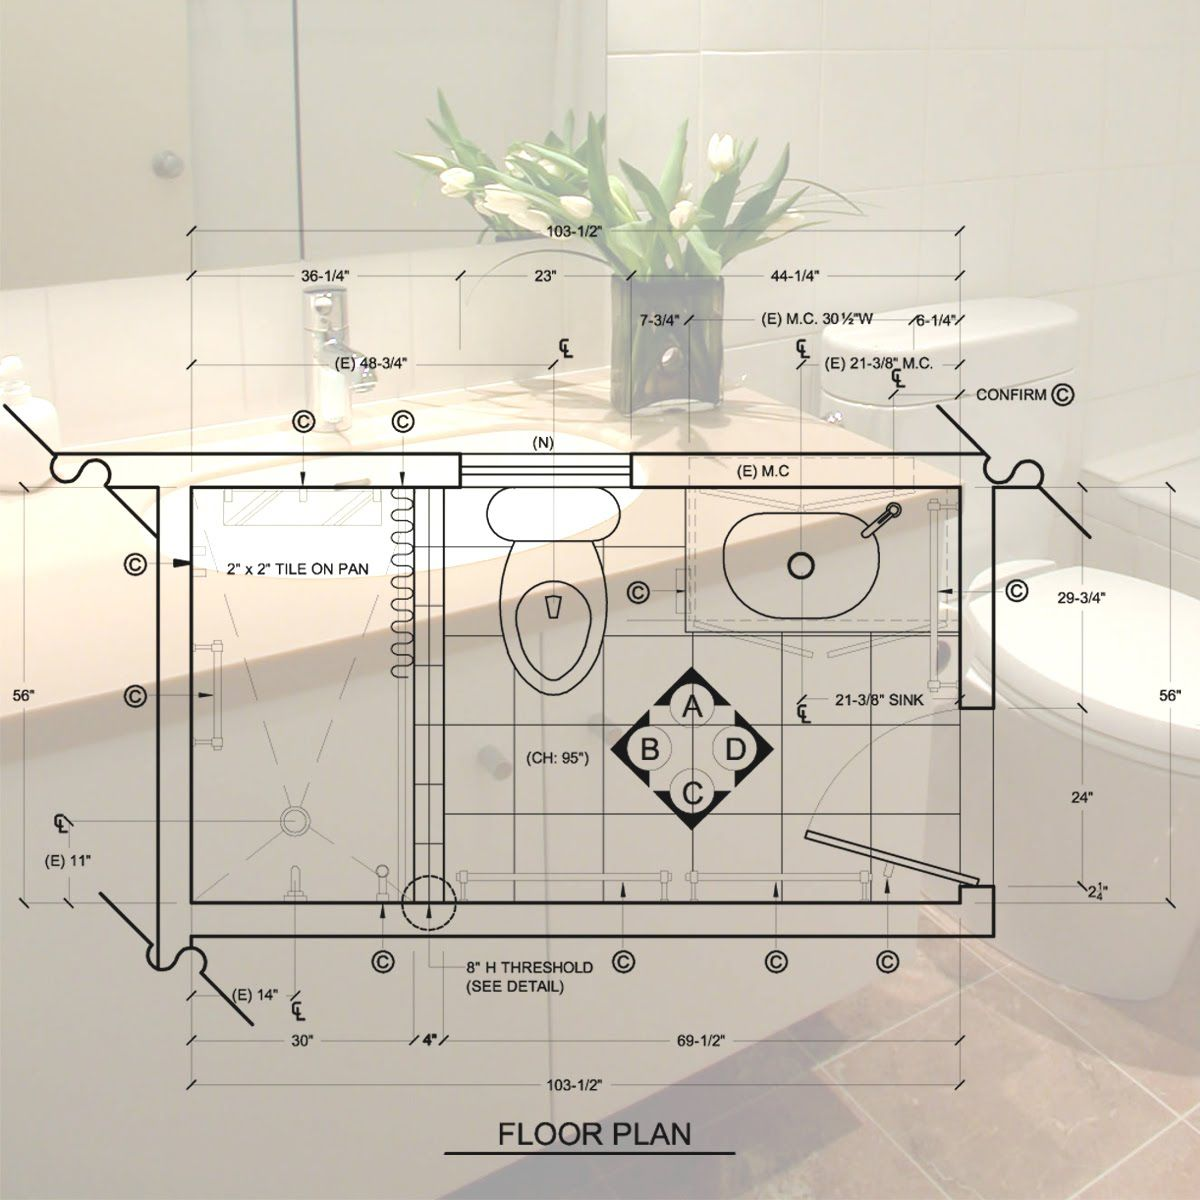 Small bathroom floor plans 5 x 8 - Find This Pin And More On Ideas 6 12 Bathroom Floor Plans 8 X